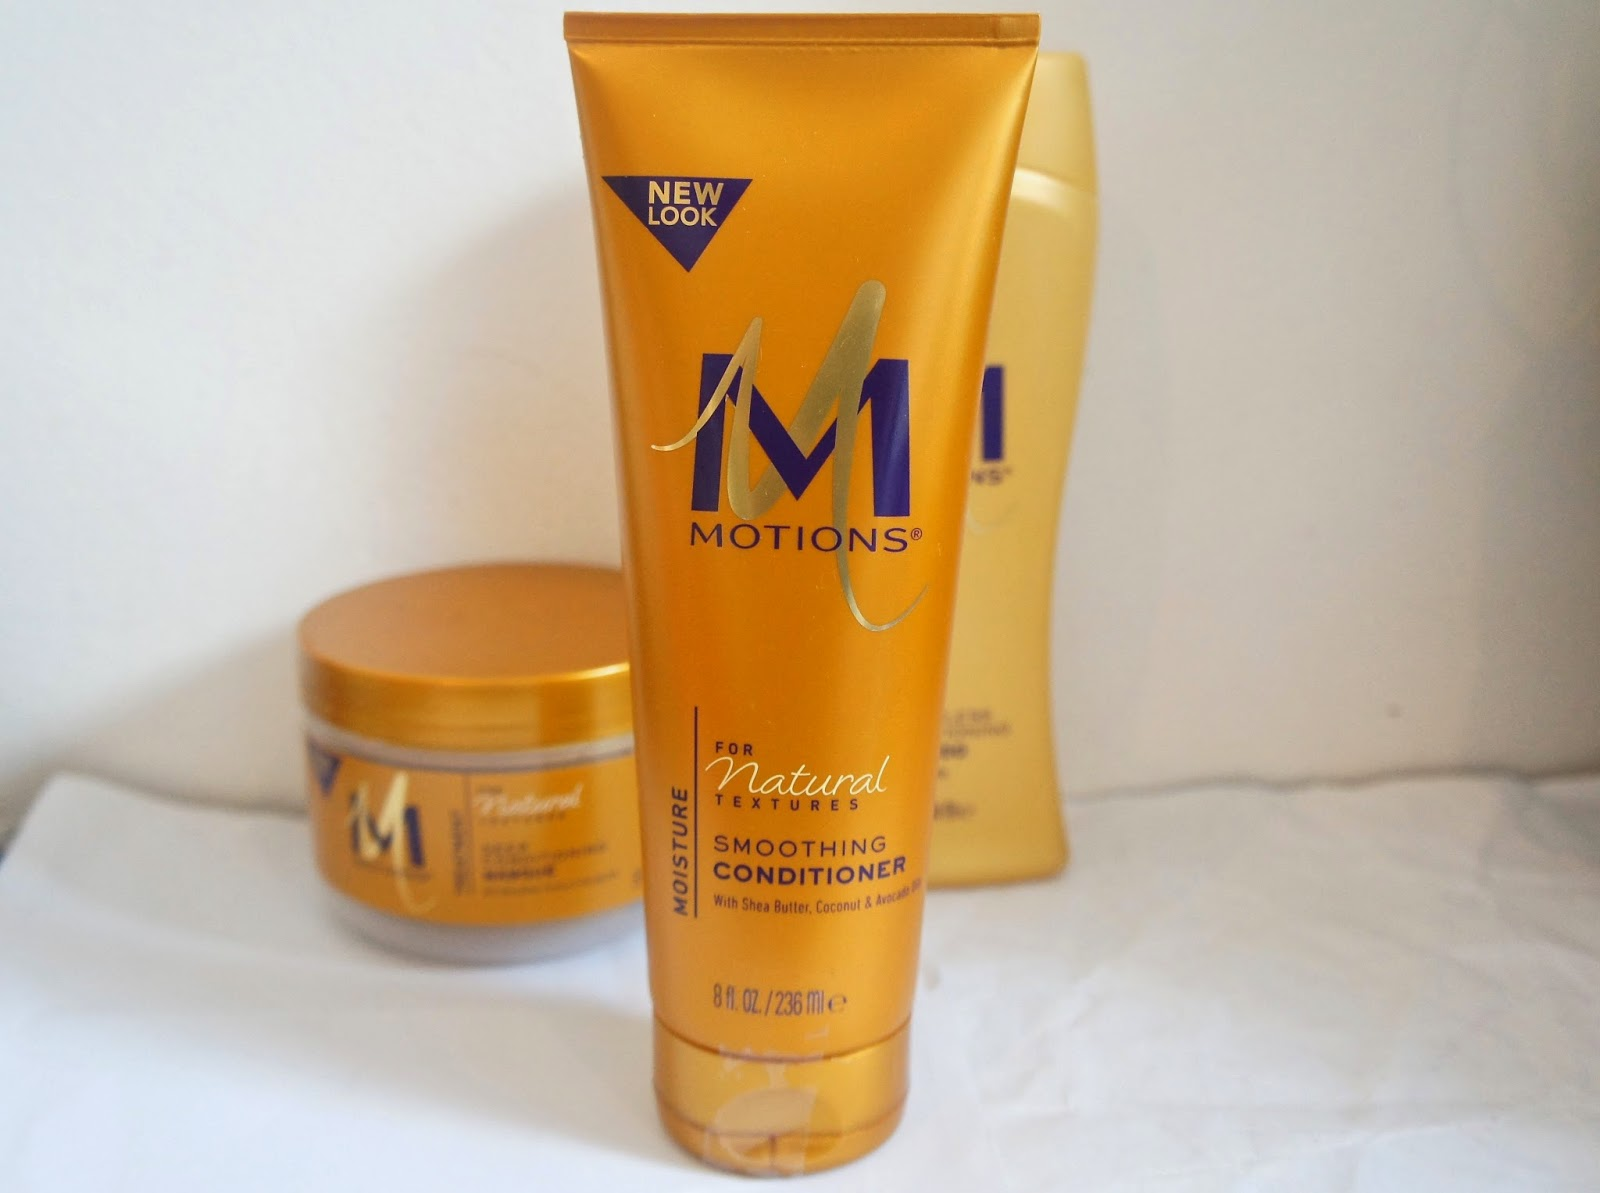 Motions For Natural Textures; Smoothing Conditioner Review